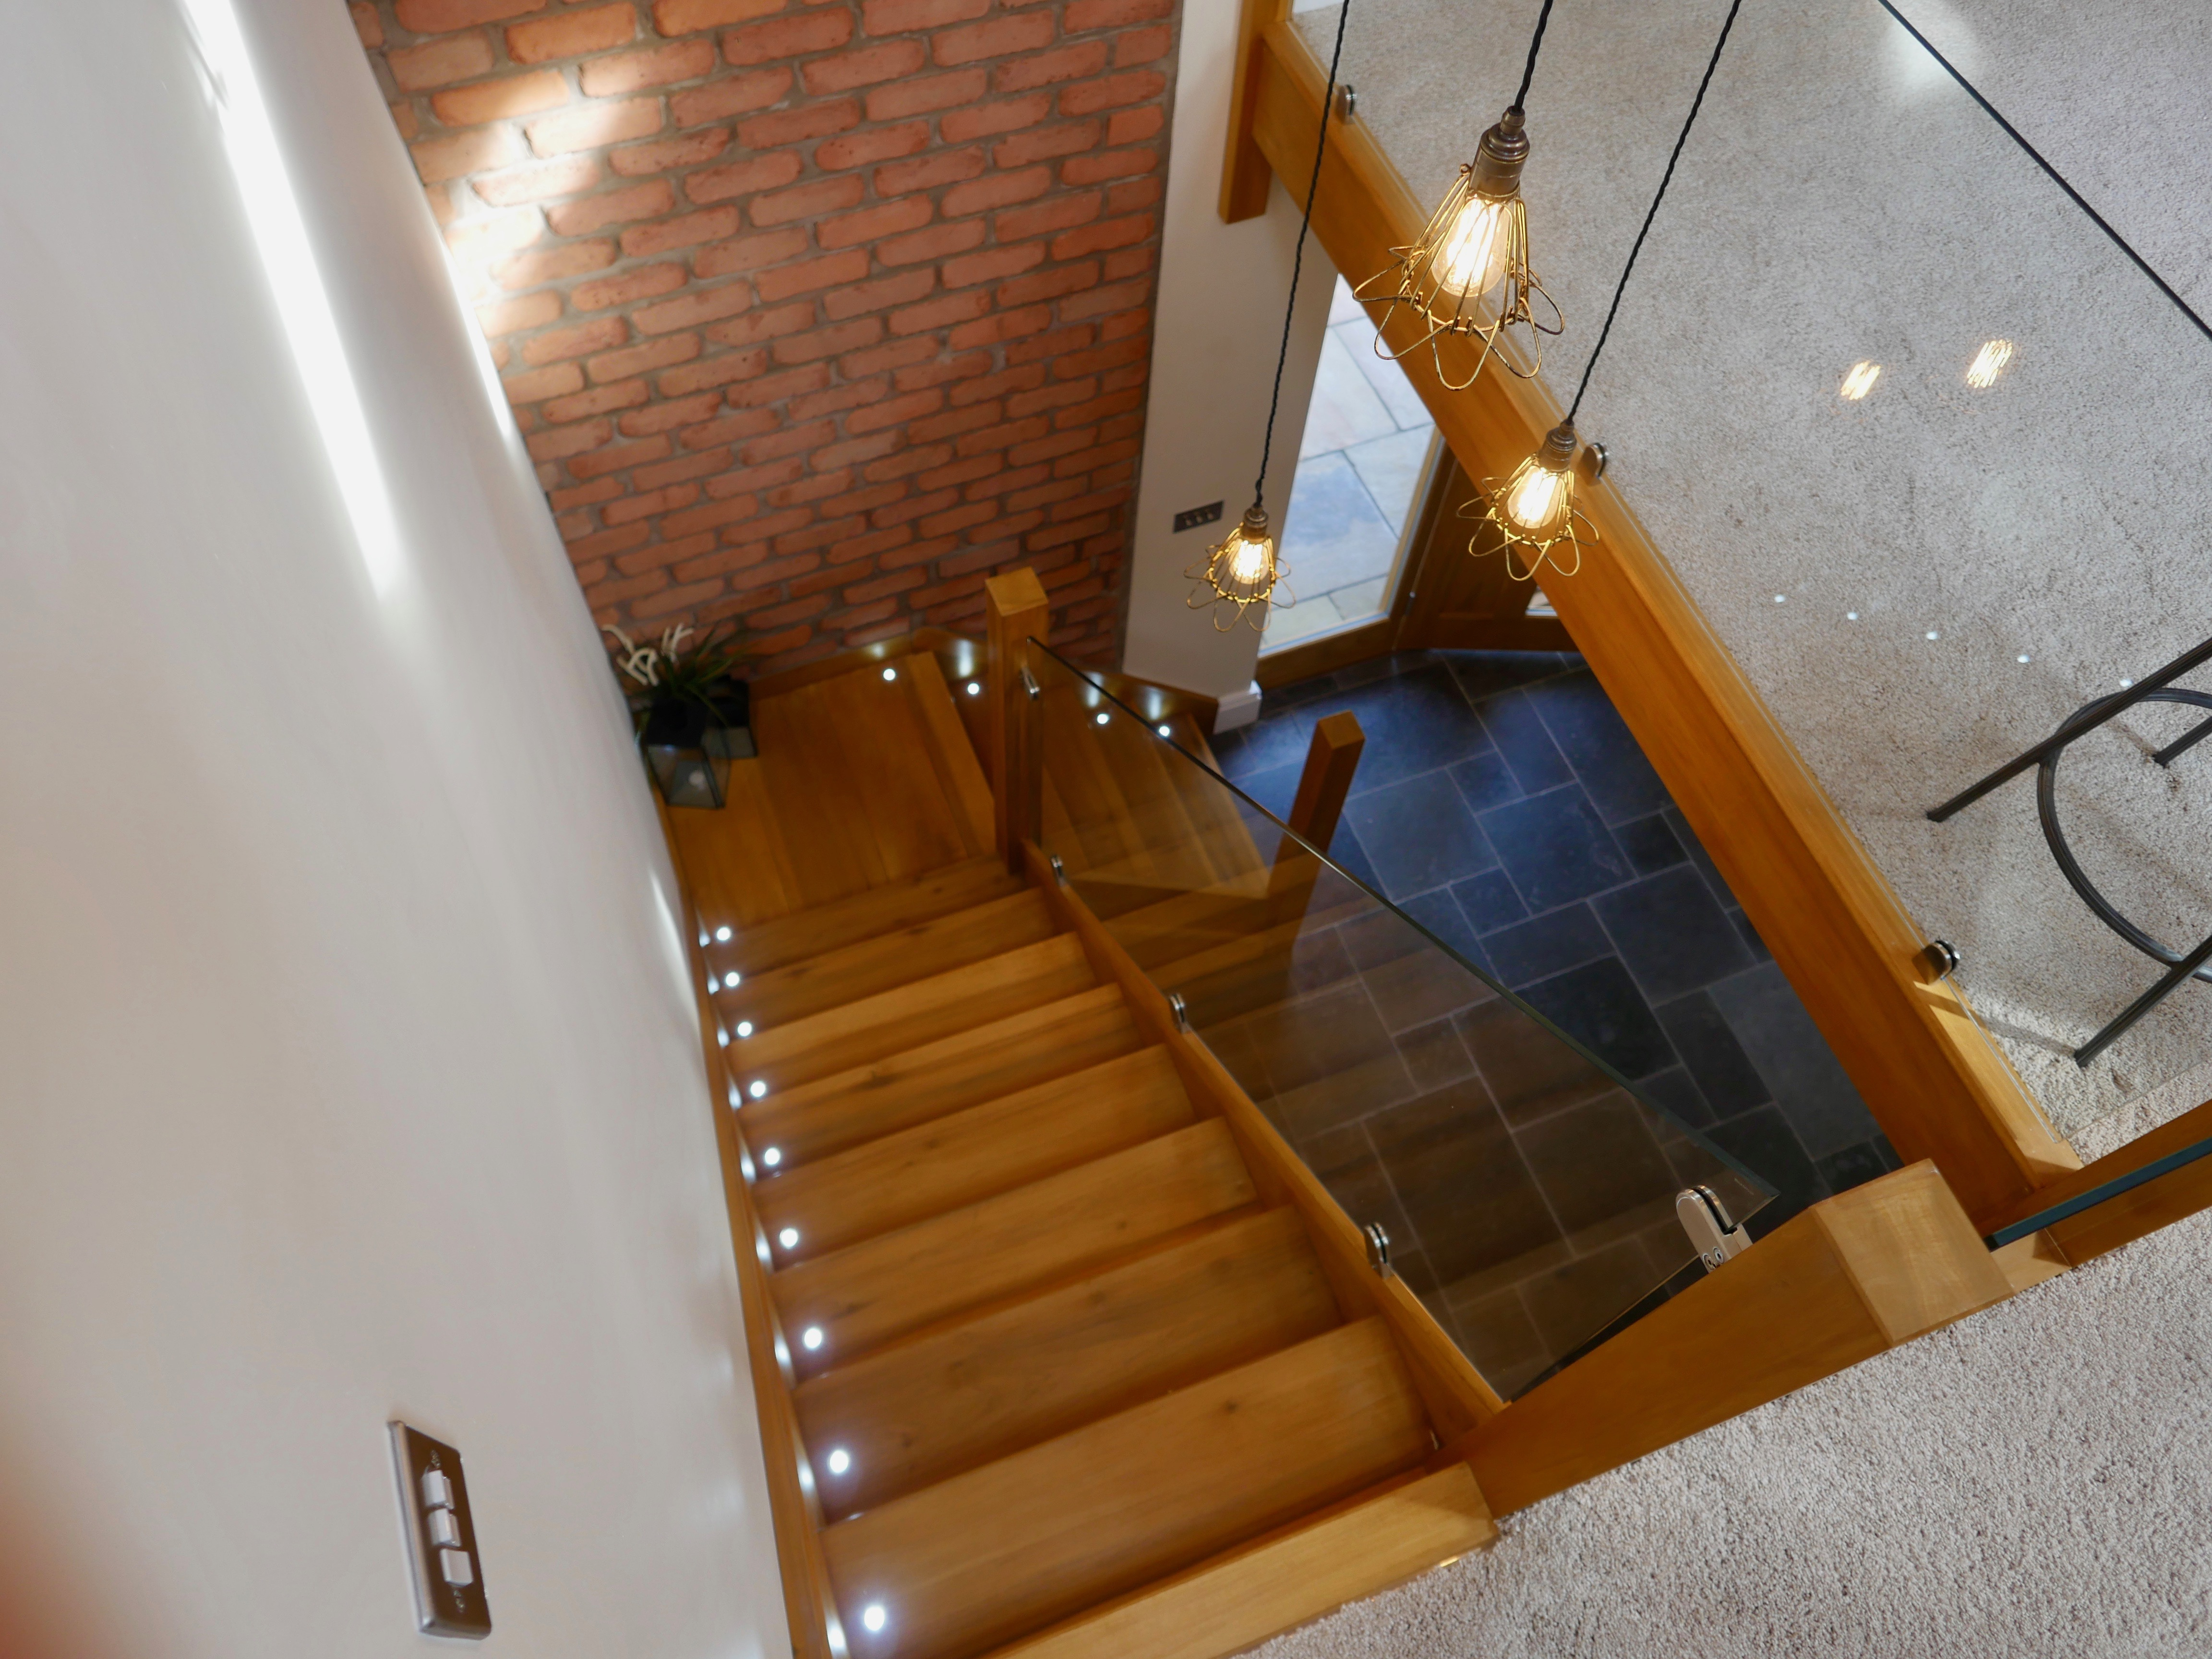 45) stairs 3